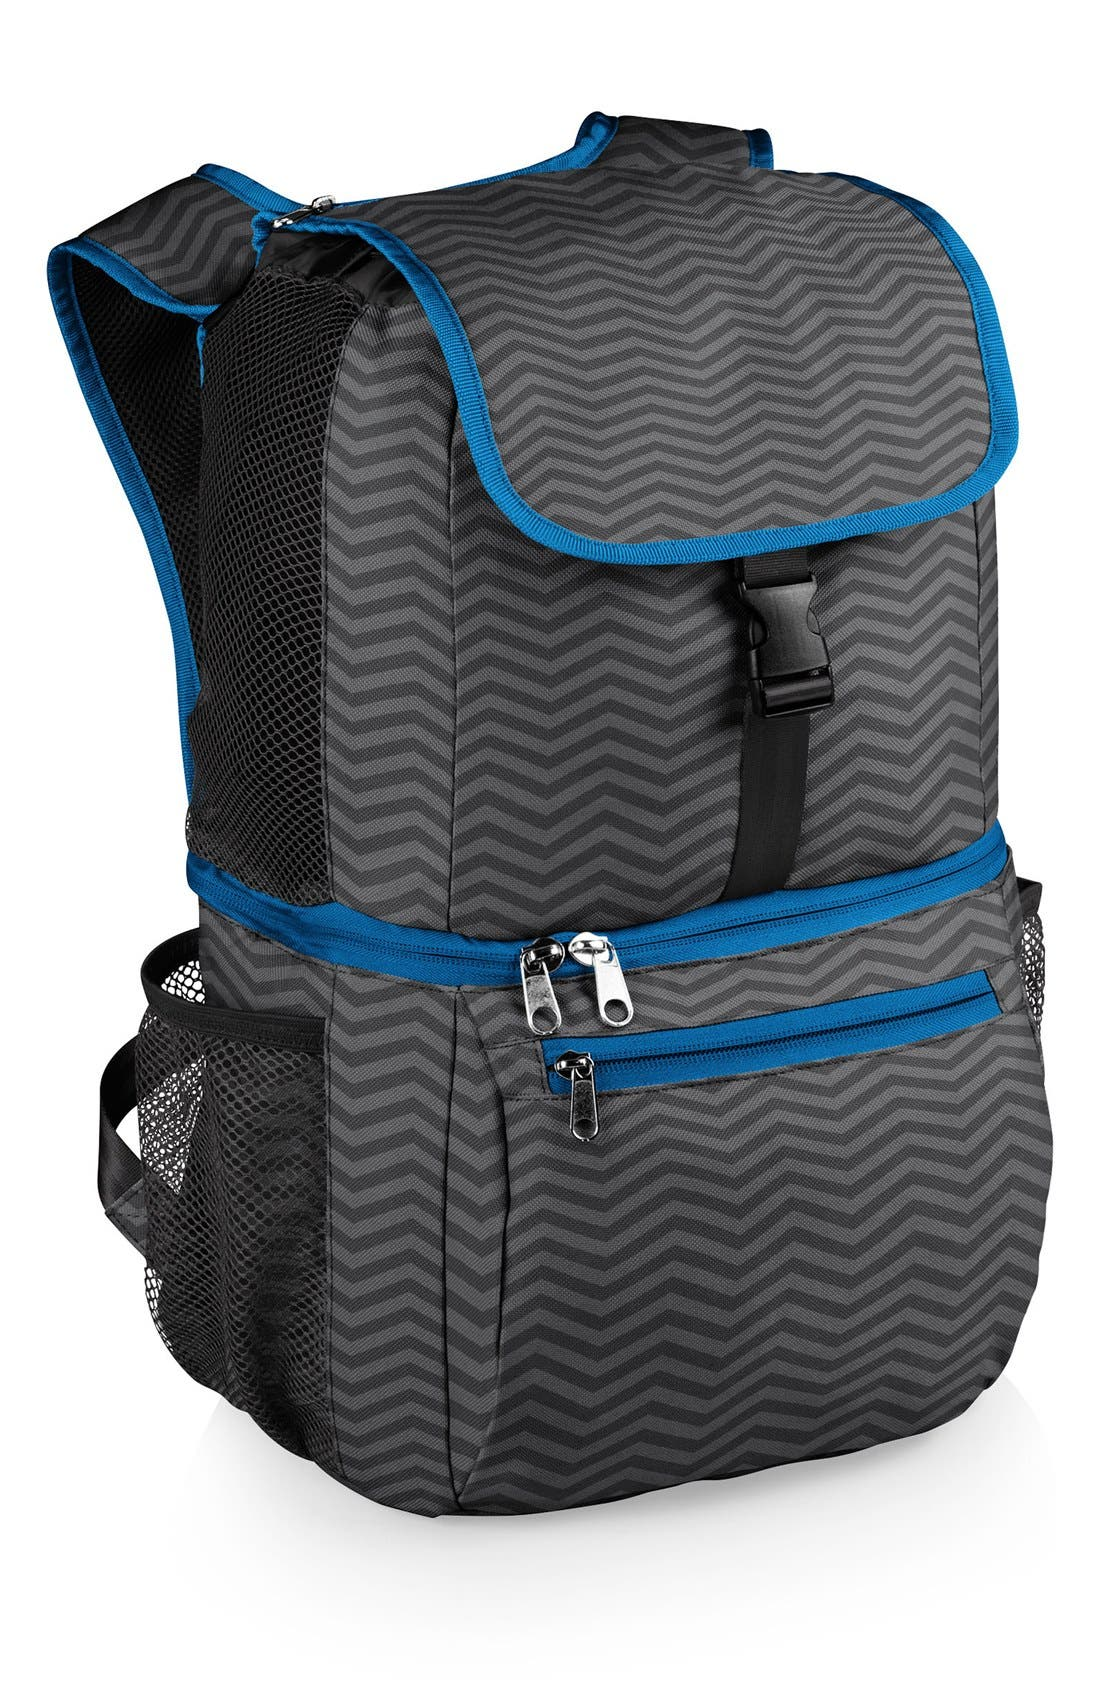 'Pismo' Insulated Cooler Backpack,                             Main thumbnail 1, color,                             020